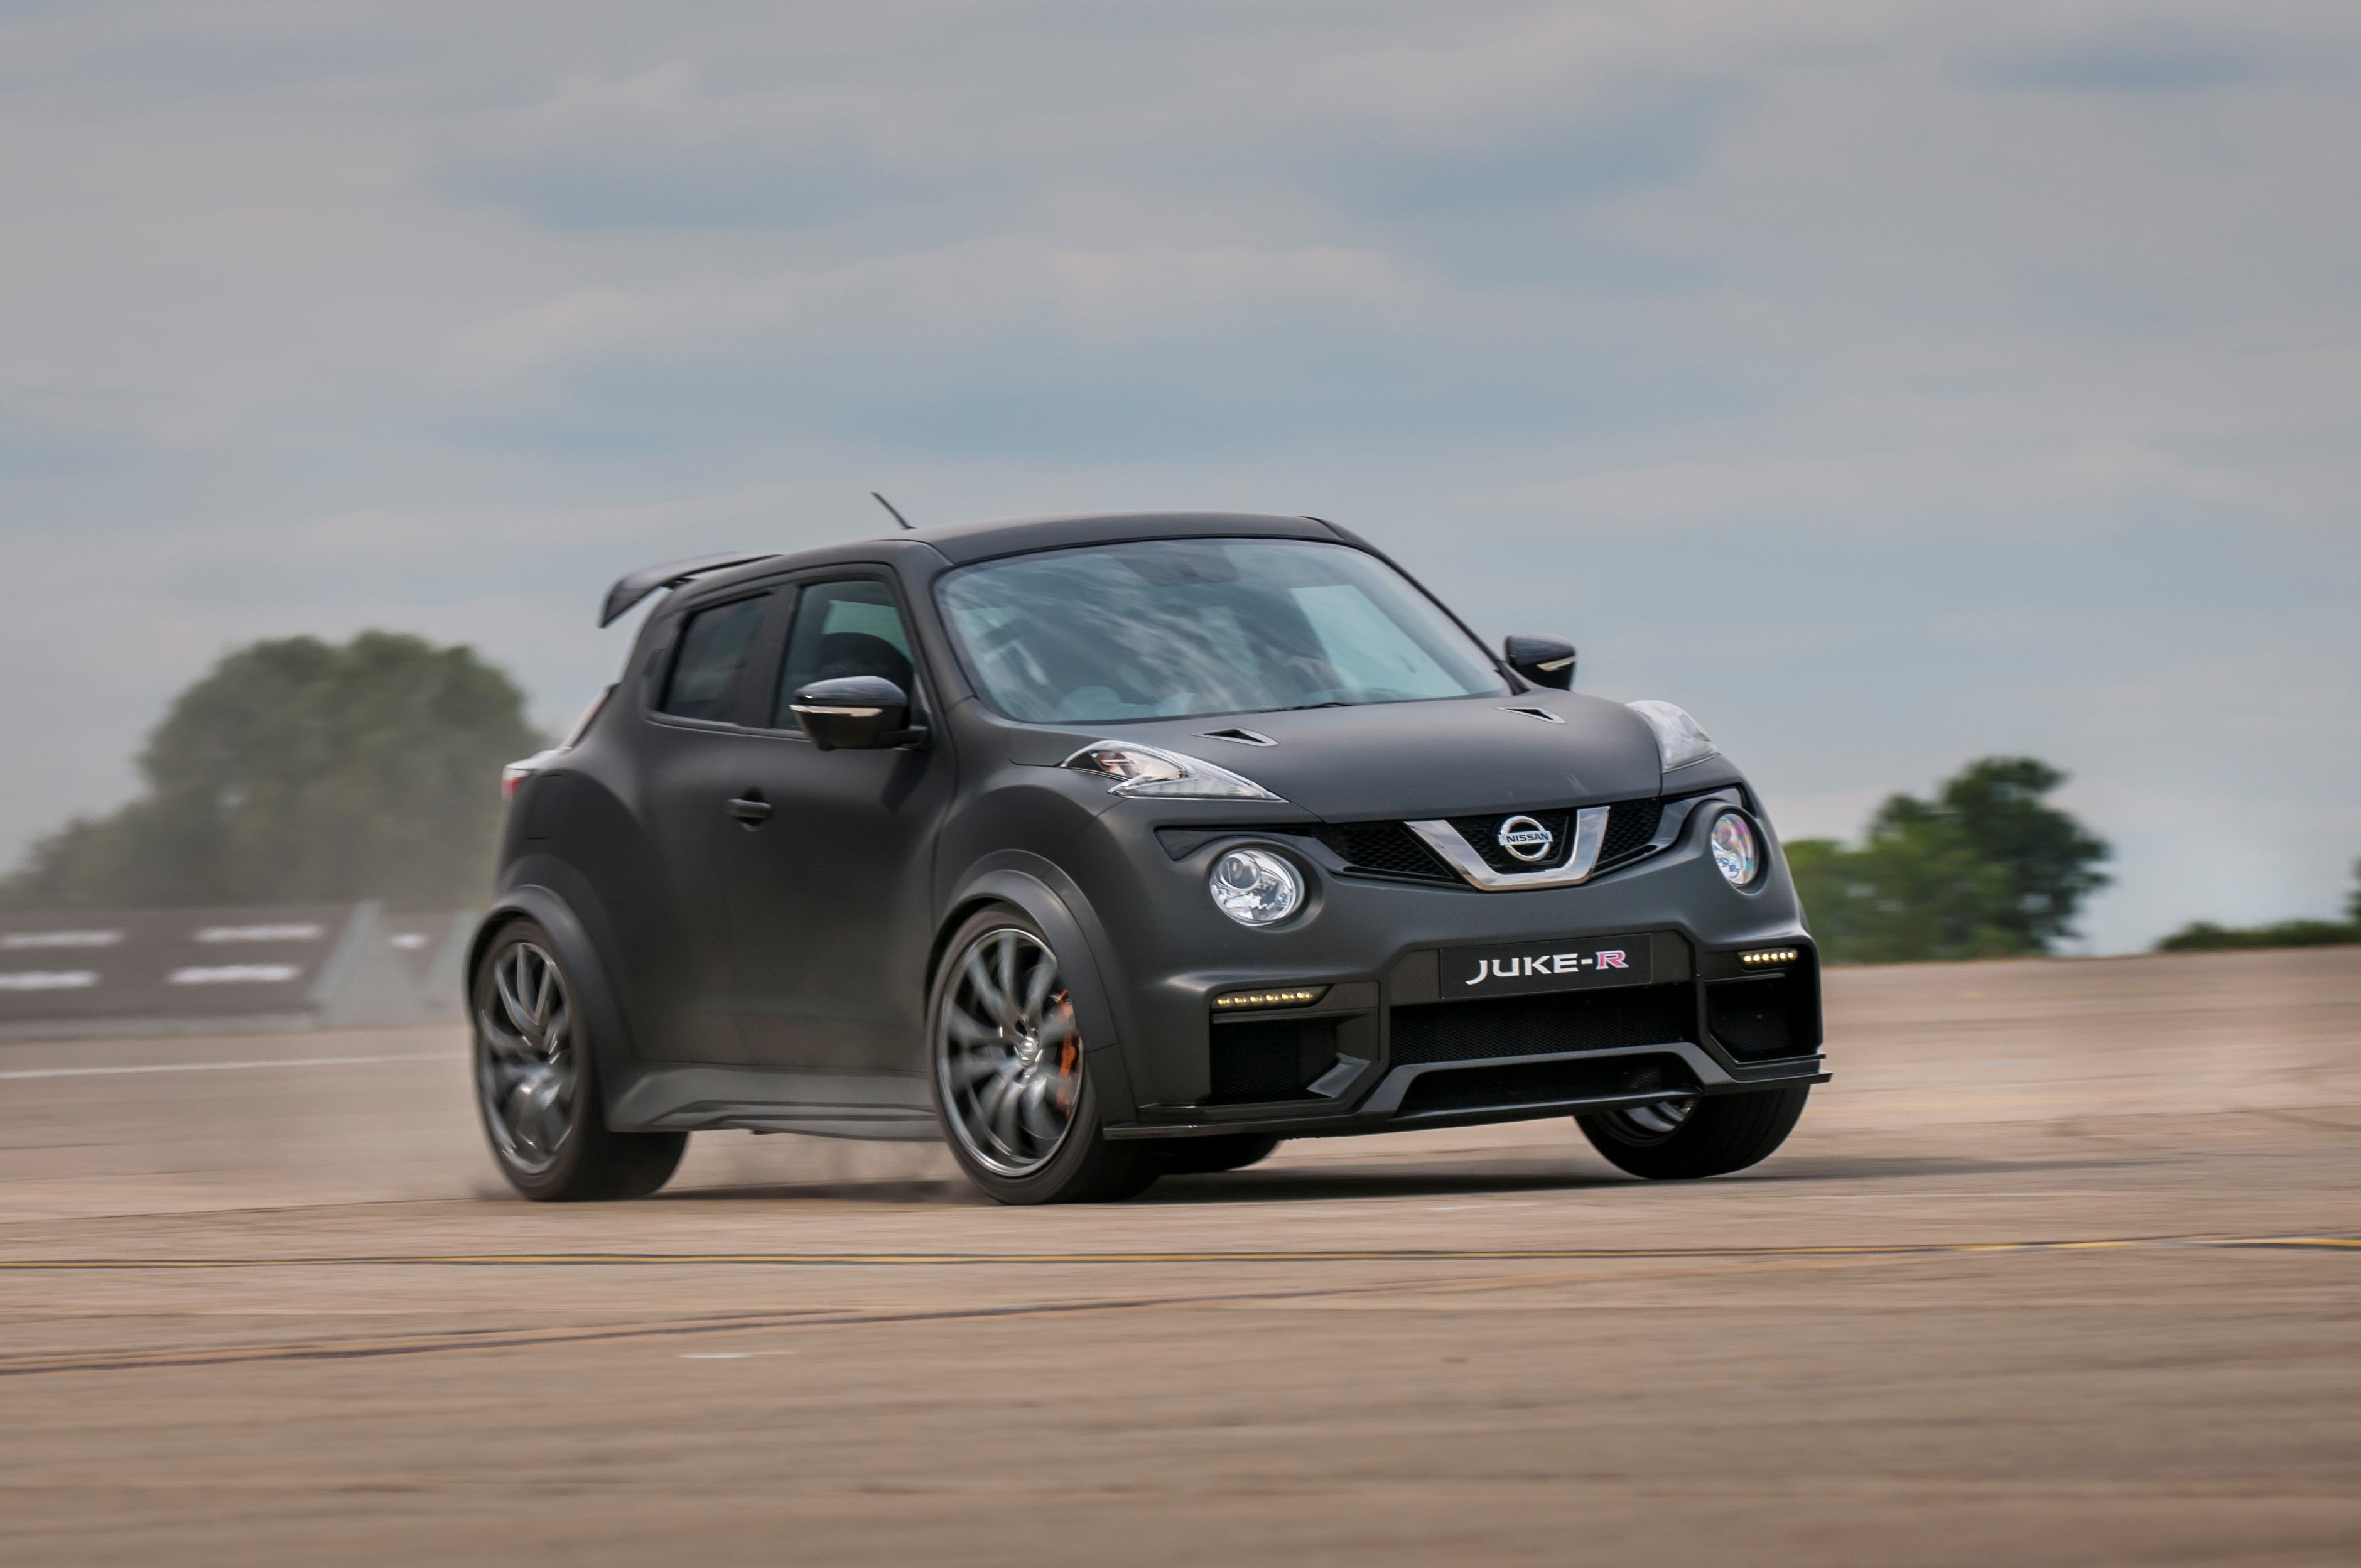 Nissan introduced the latest edition of its supercarcrossover